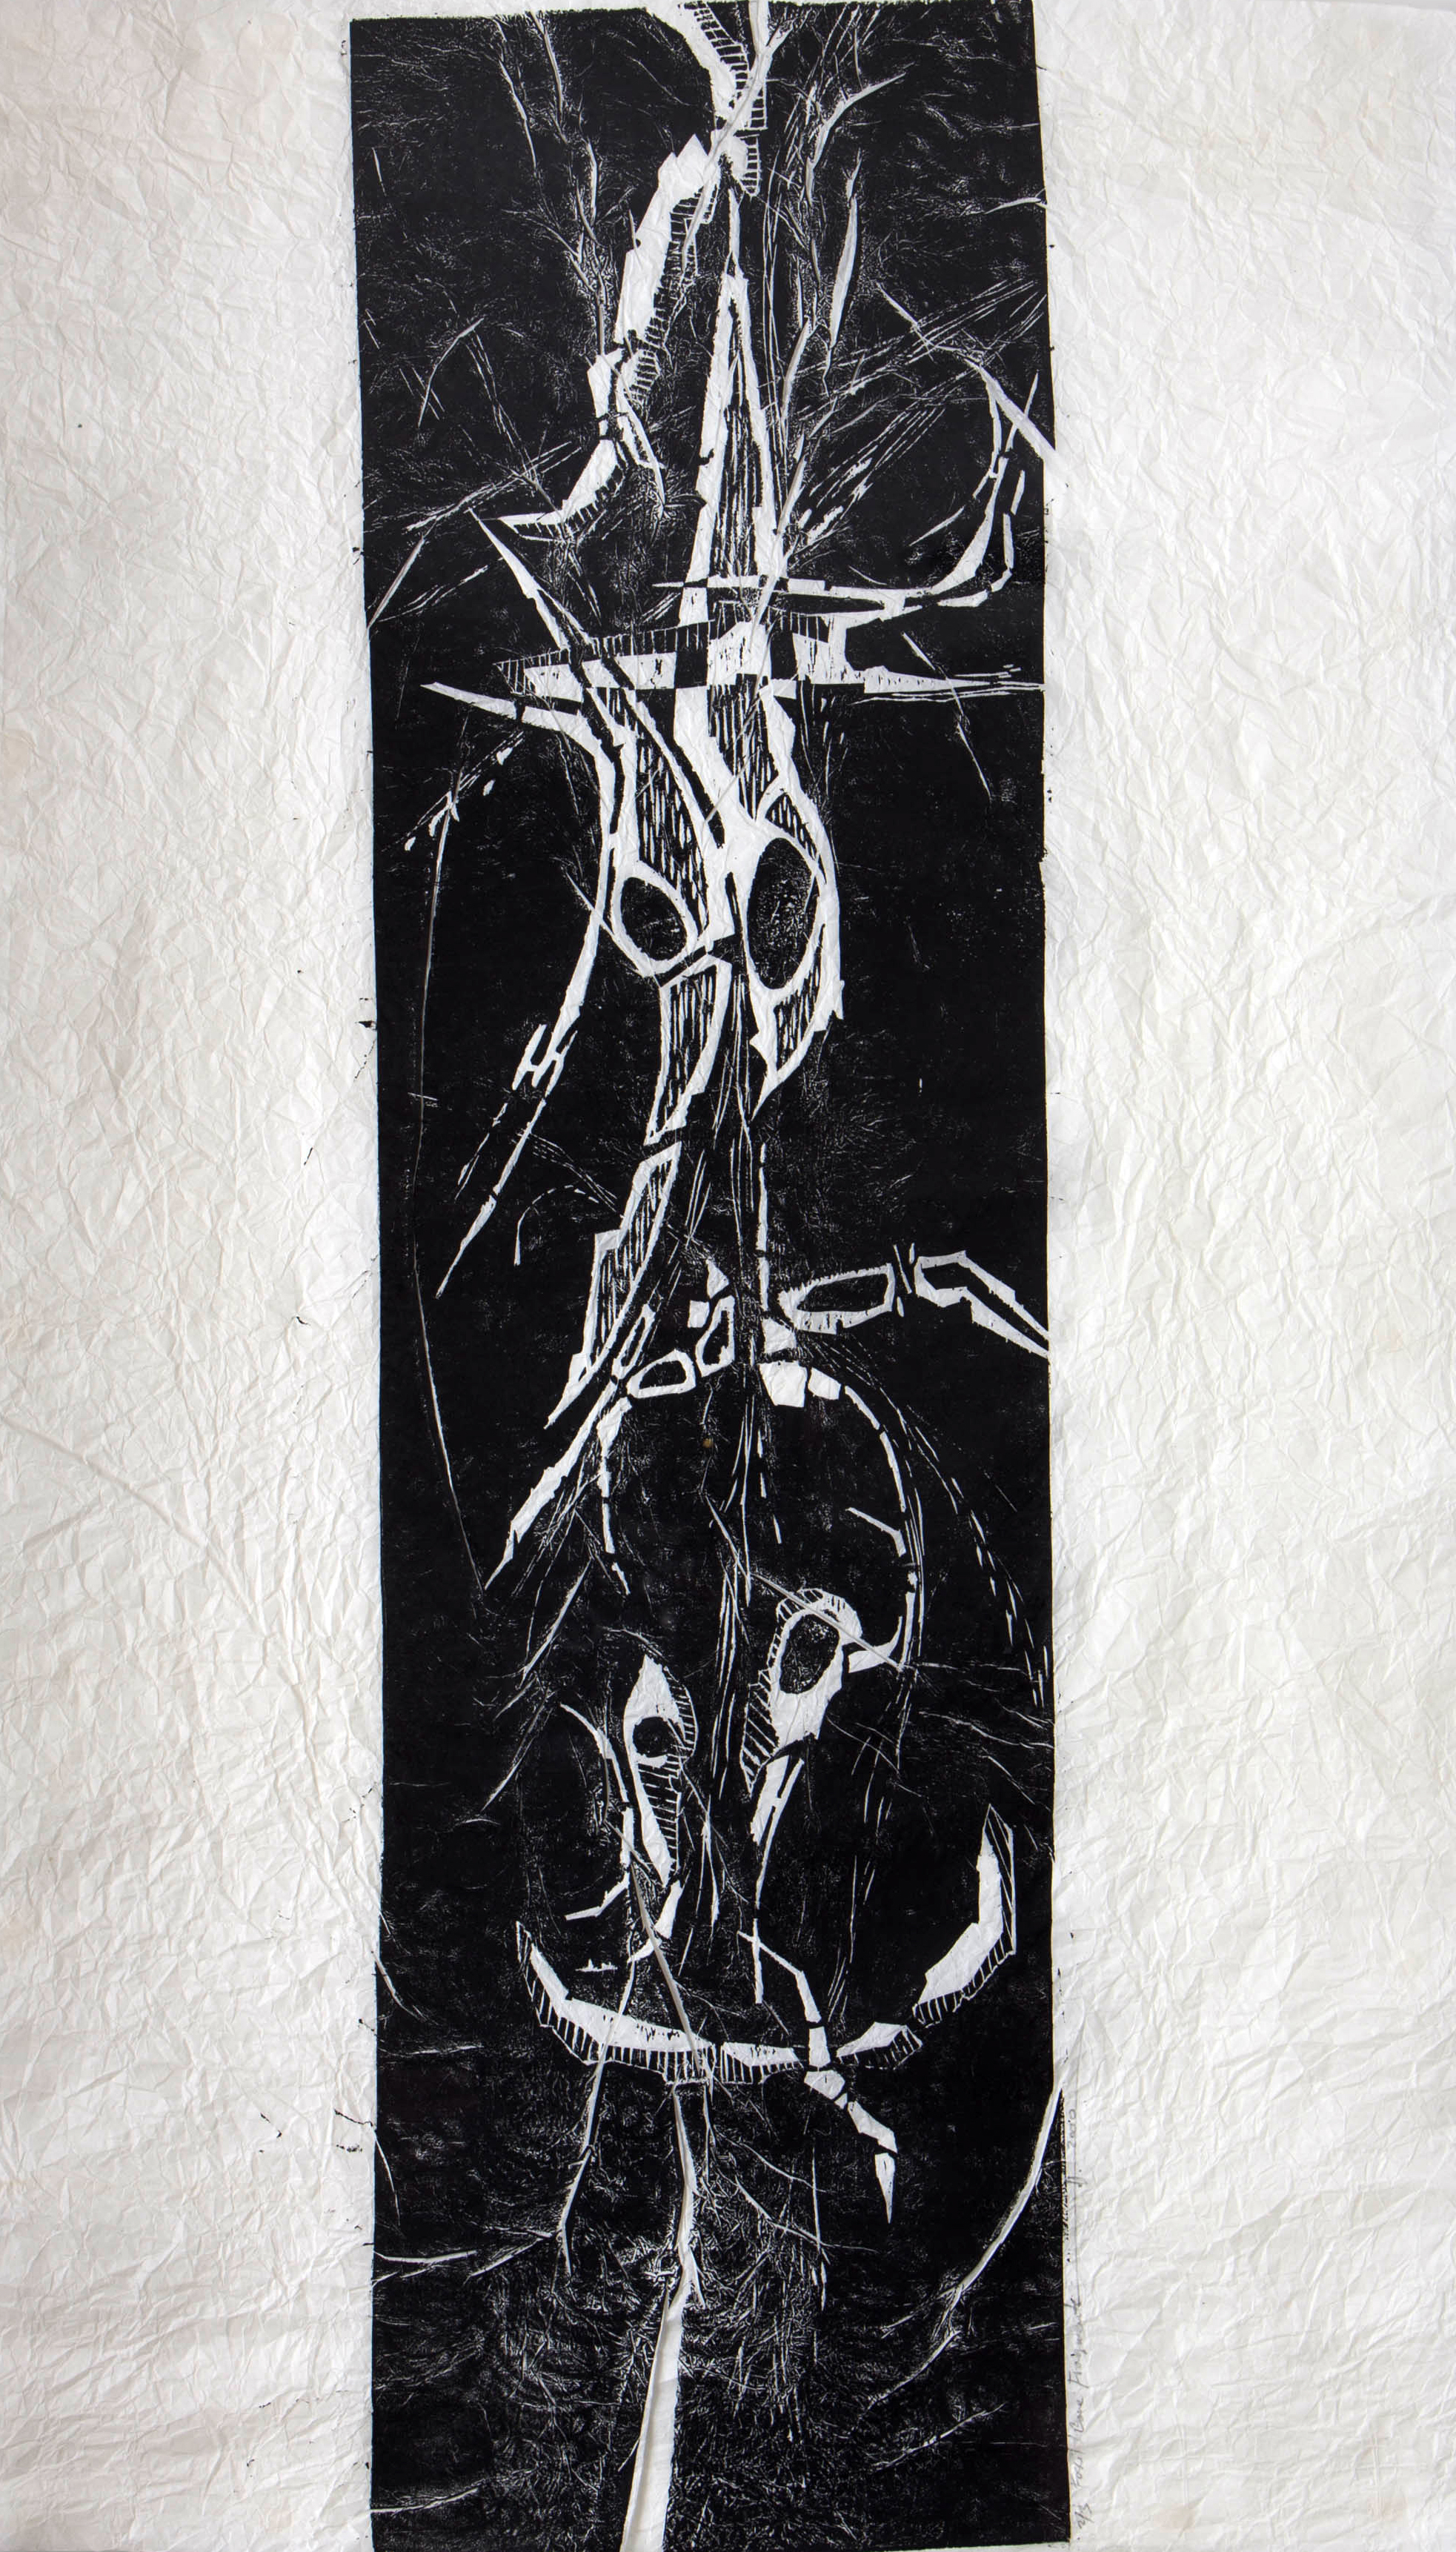 "Fossil / Bone / Fragments , BC  Woodcut on Distressed Rice Paper  30"" x 21.5""  2000 / Silence Exhibition 1/3, Framed / $650"